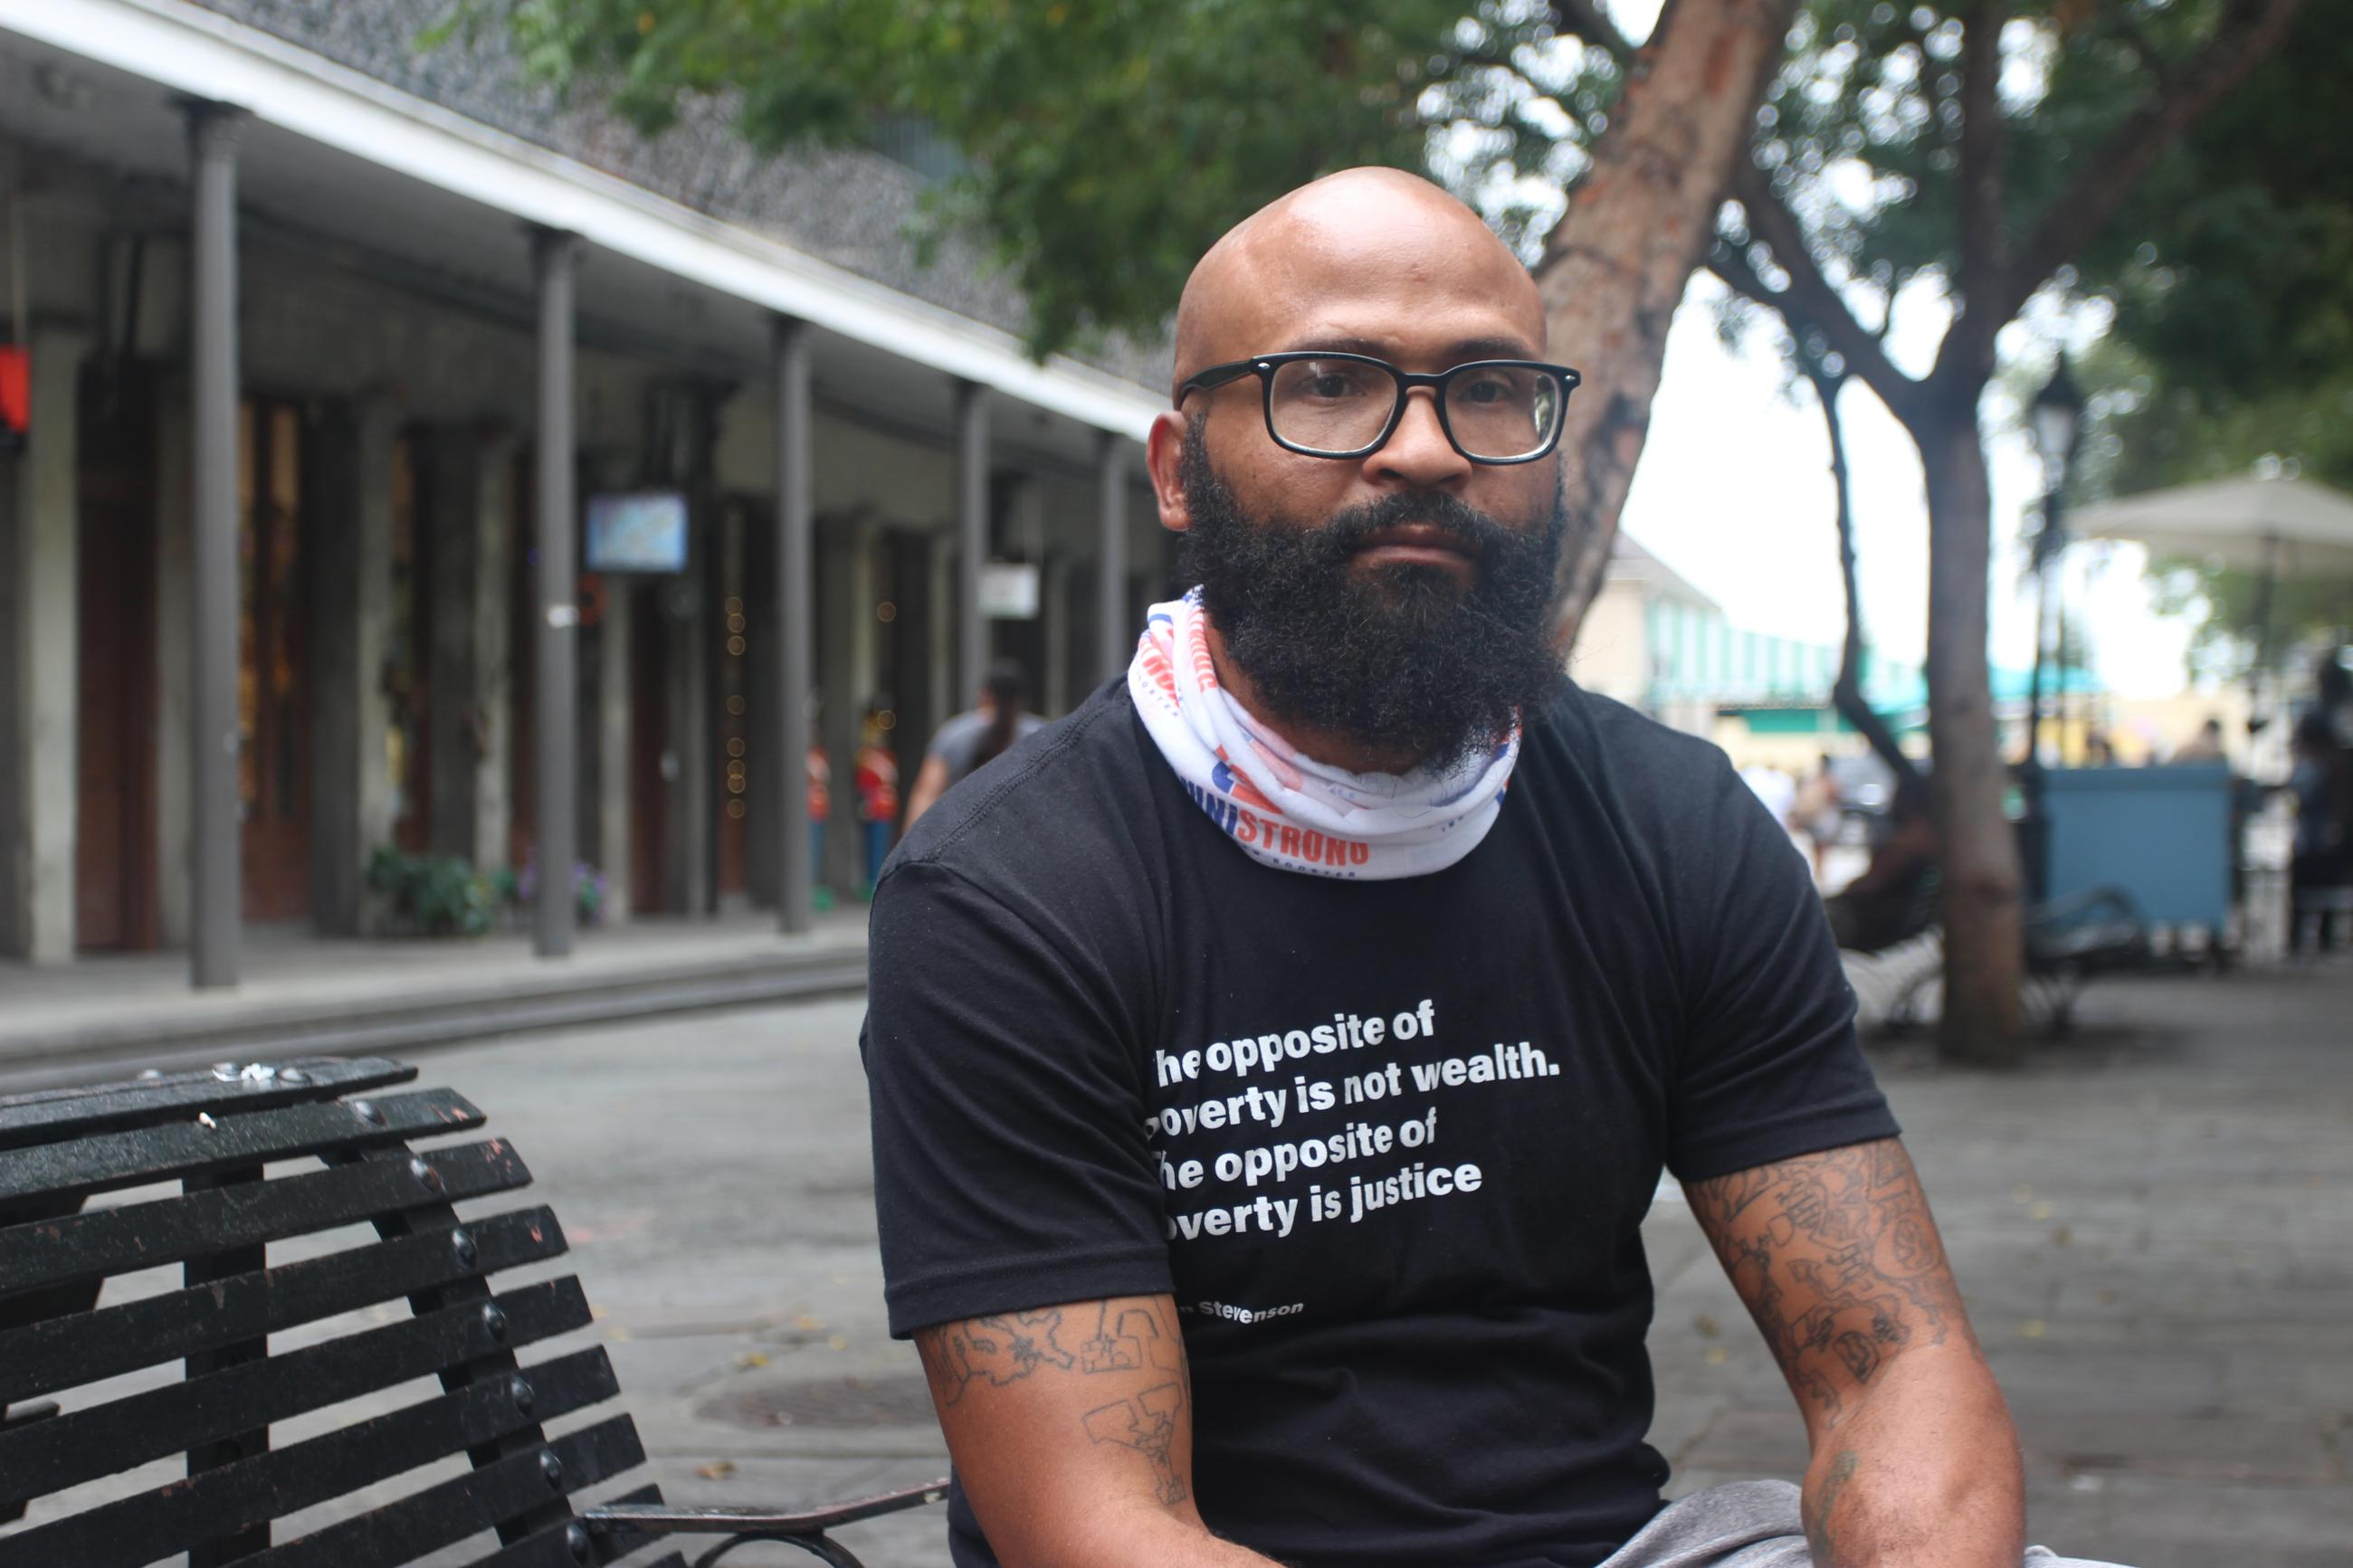 """Man with beard, glasses and black t-shirt reading """"The opposite of poverty is not wealth. The opposite of poverty is justice"""" sits on bench with trees behind him."""